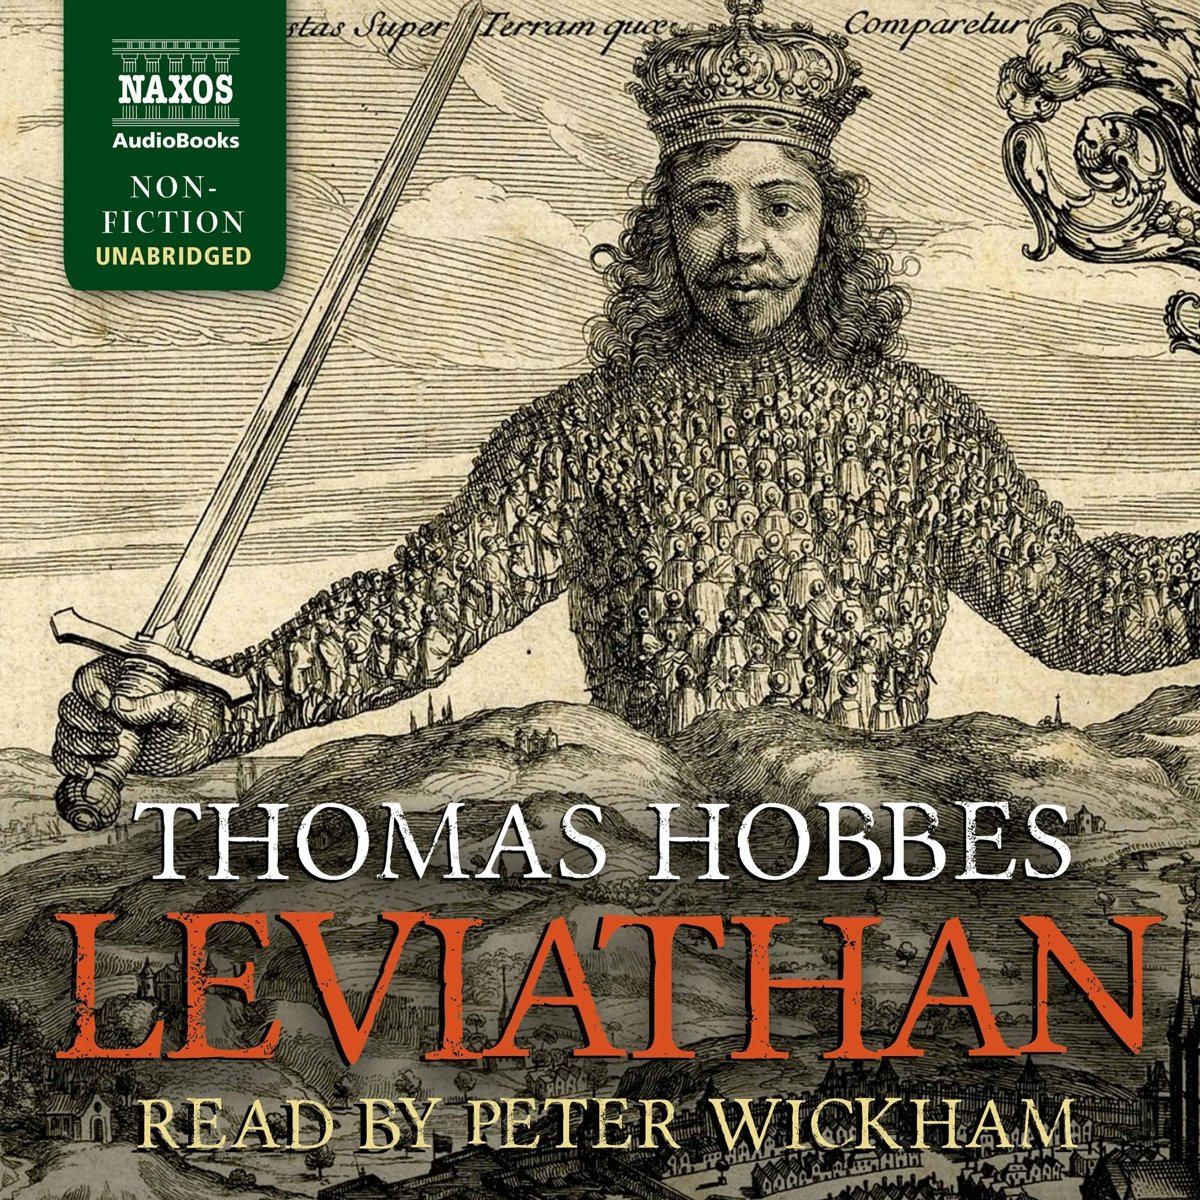 Leviathan by Naxos AudioBooks